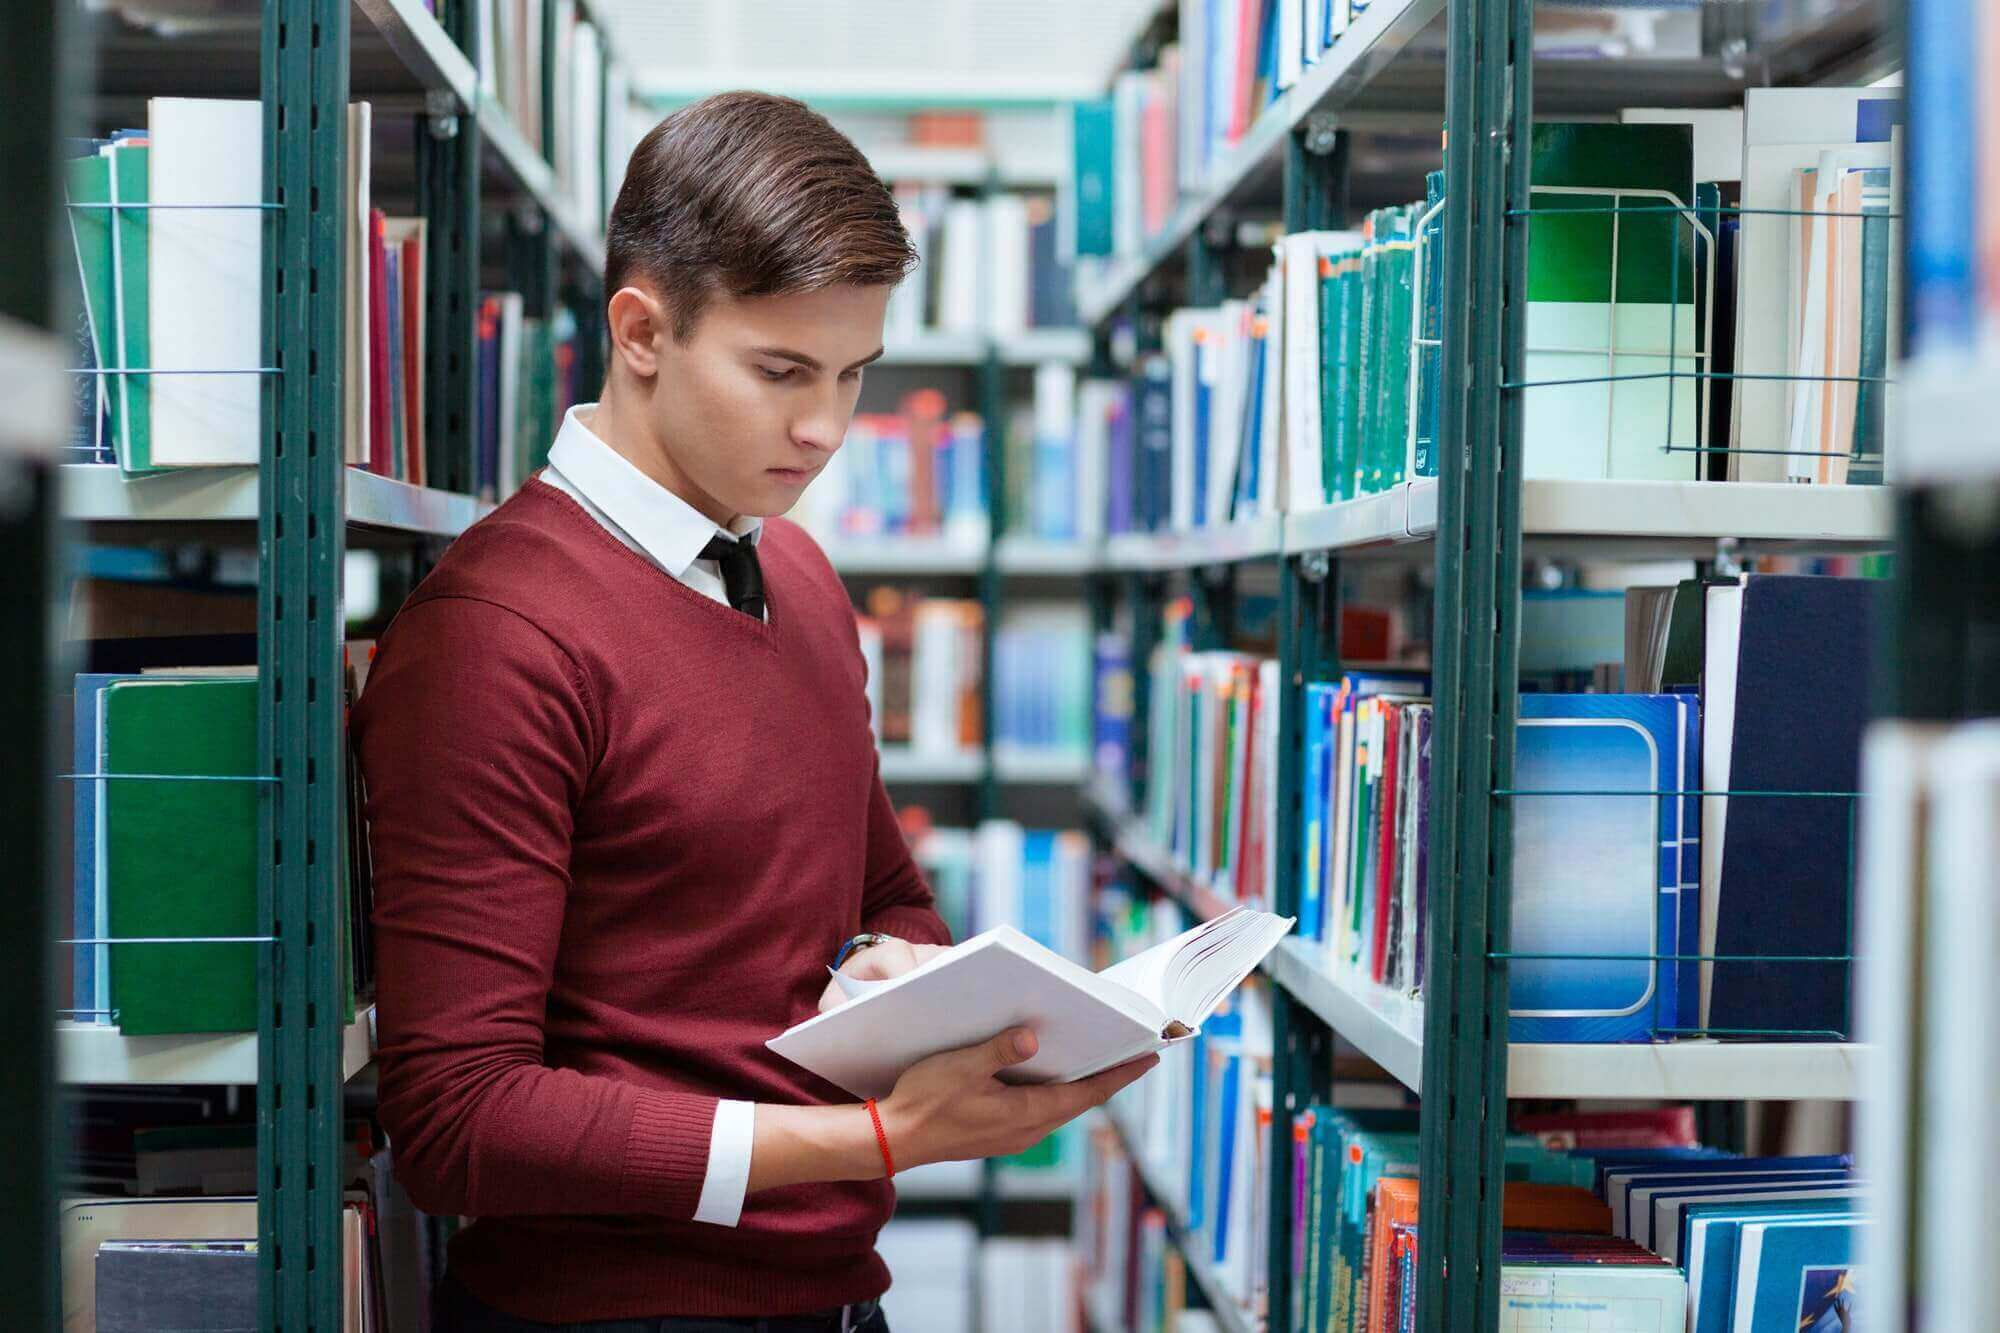 Student searching book in university library